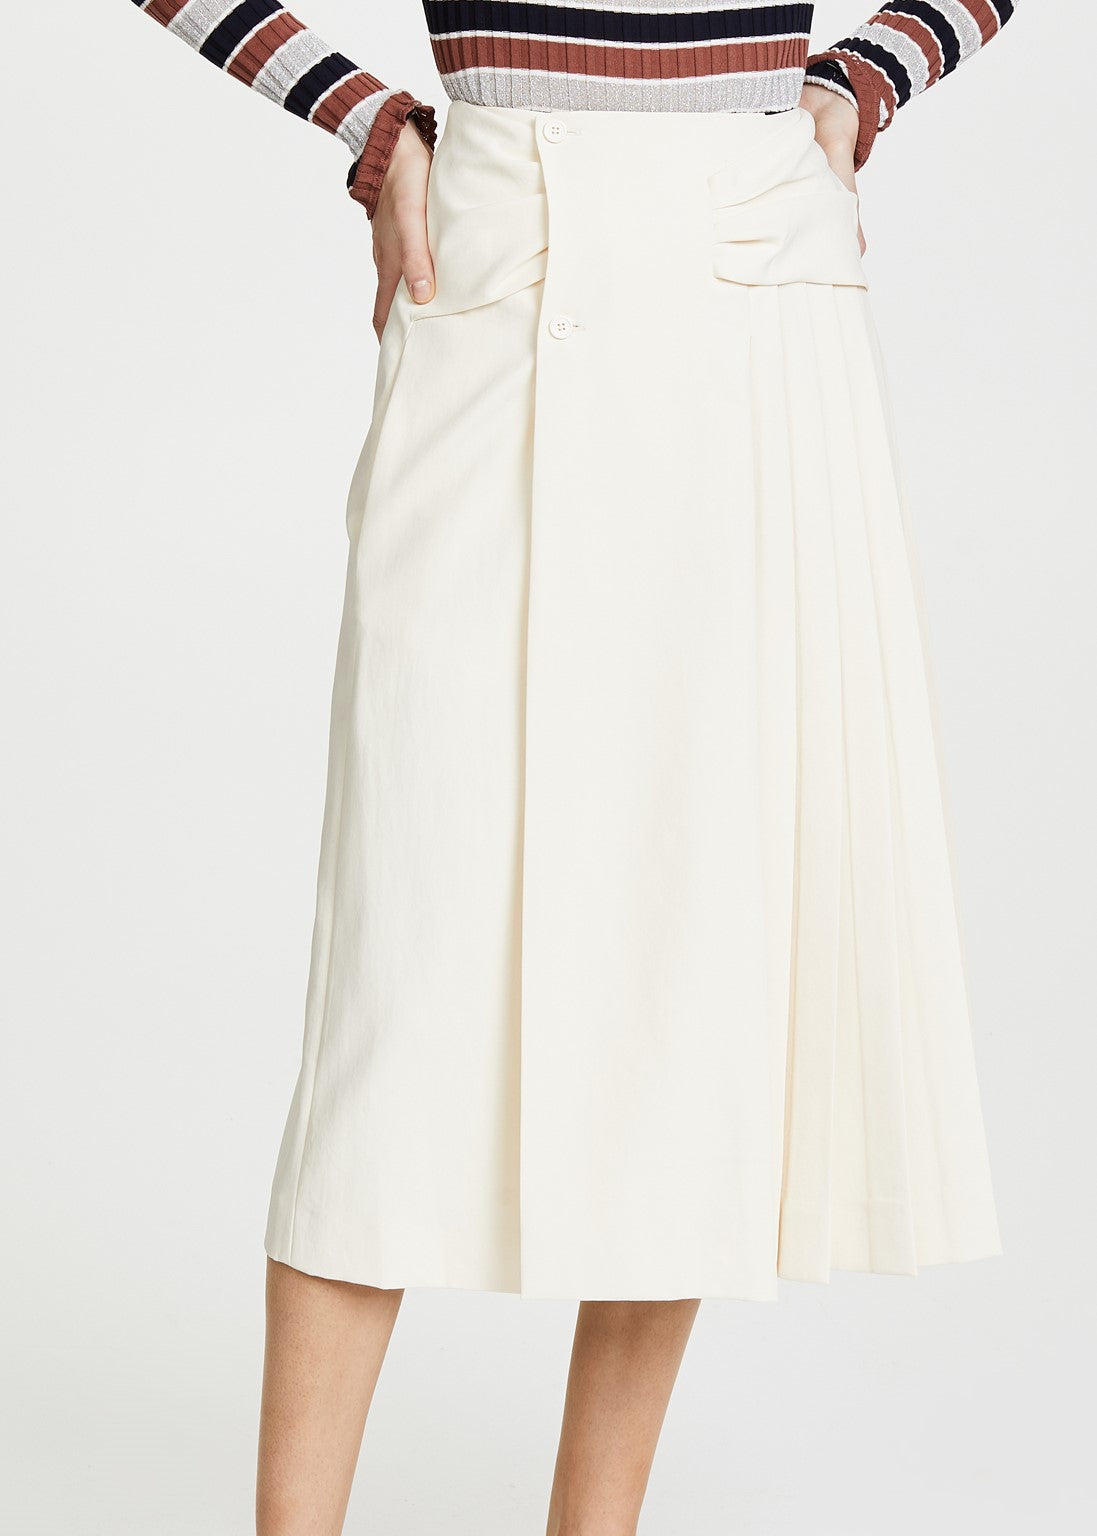 Carven pleated skirt ivory